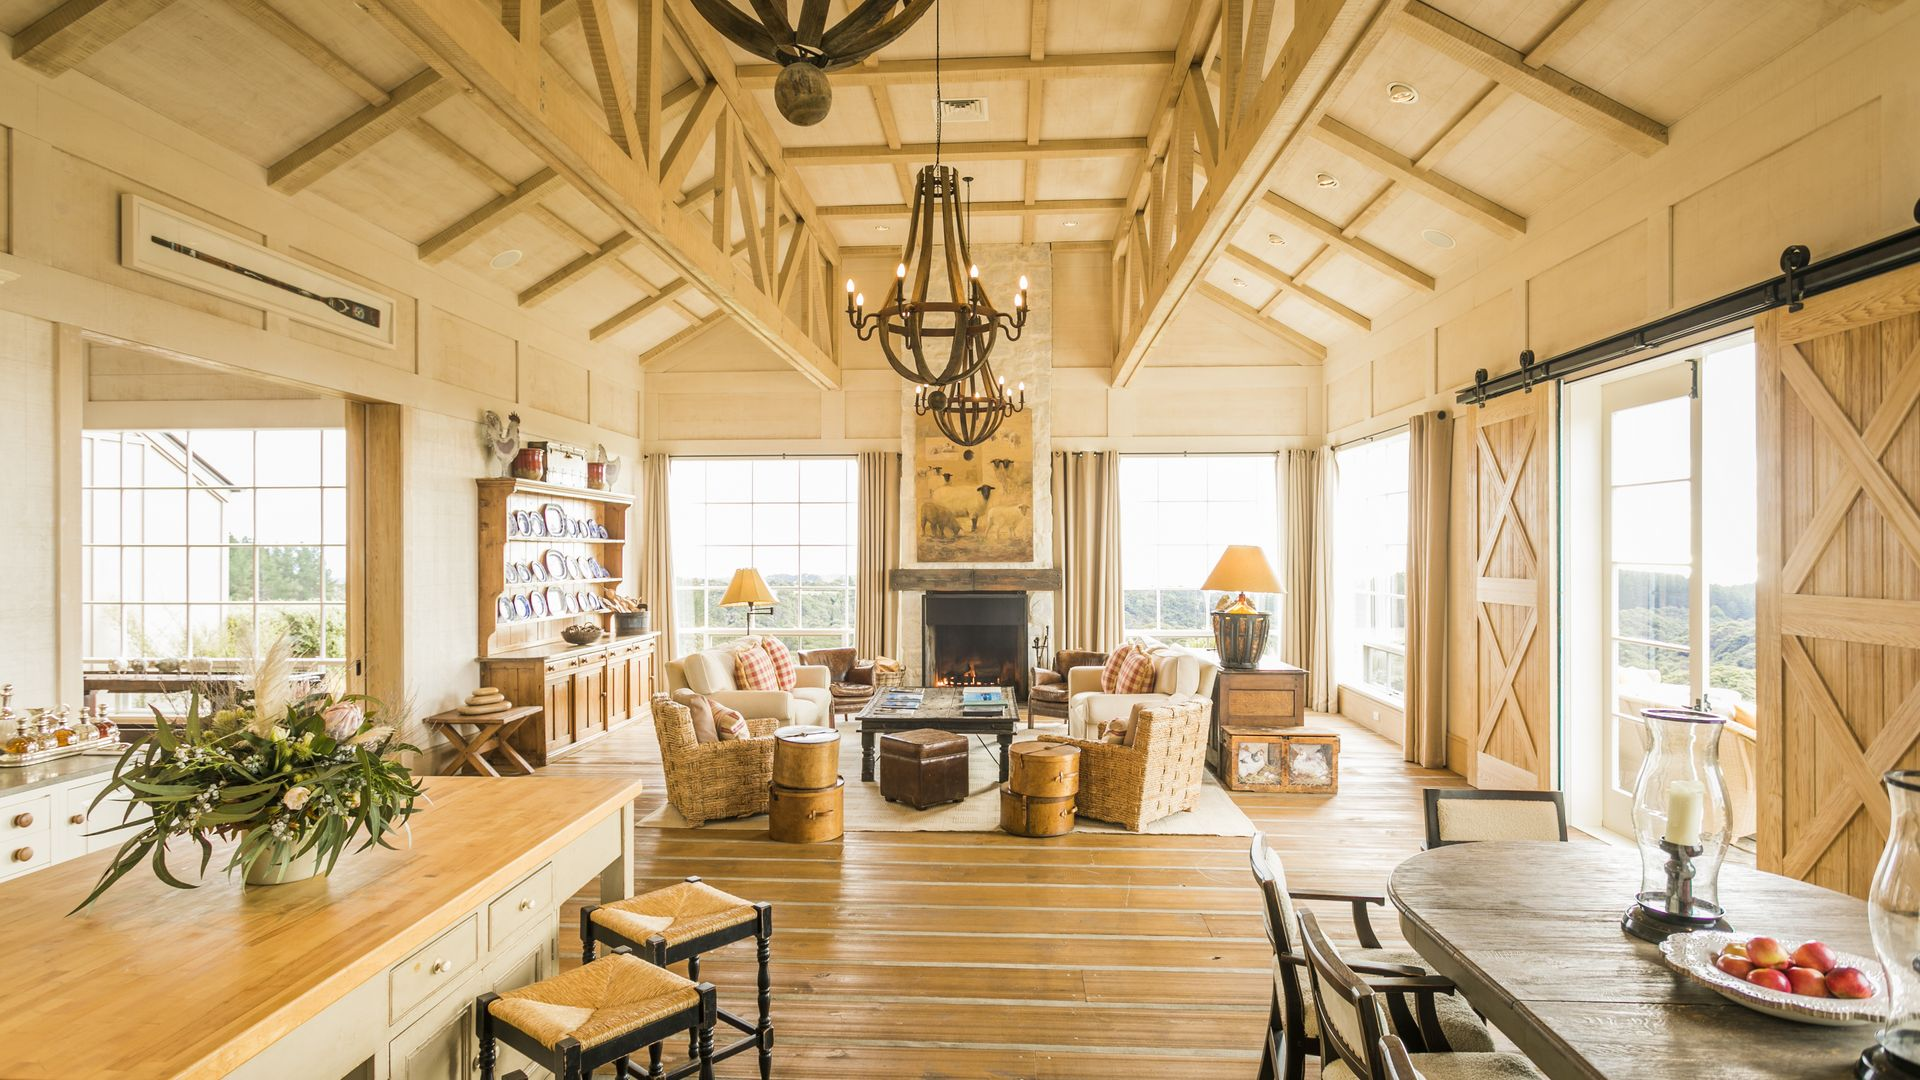 Owner's Cottage at Cape Kidnappers - pic courtesy Robertson Lodges